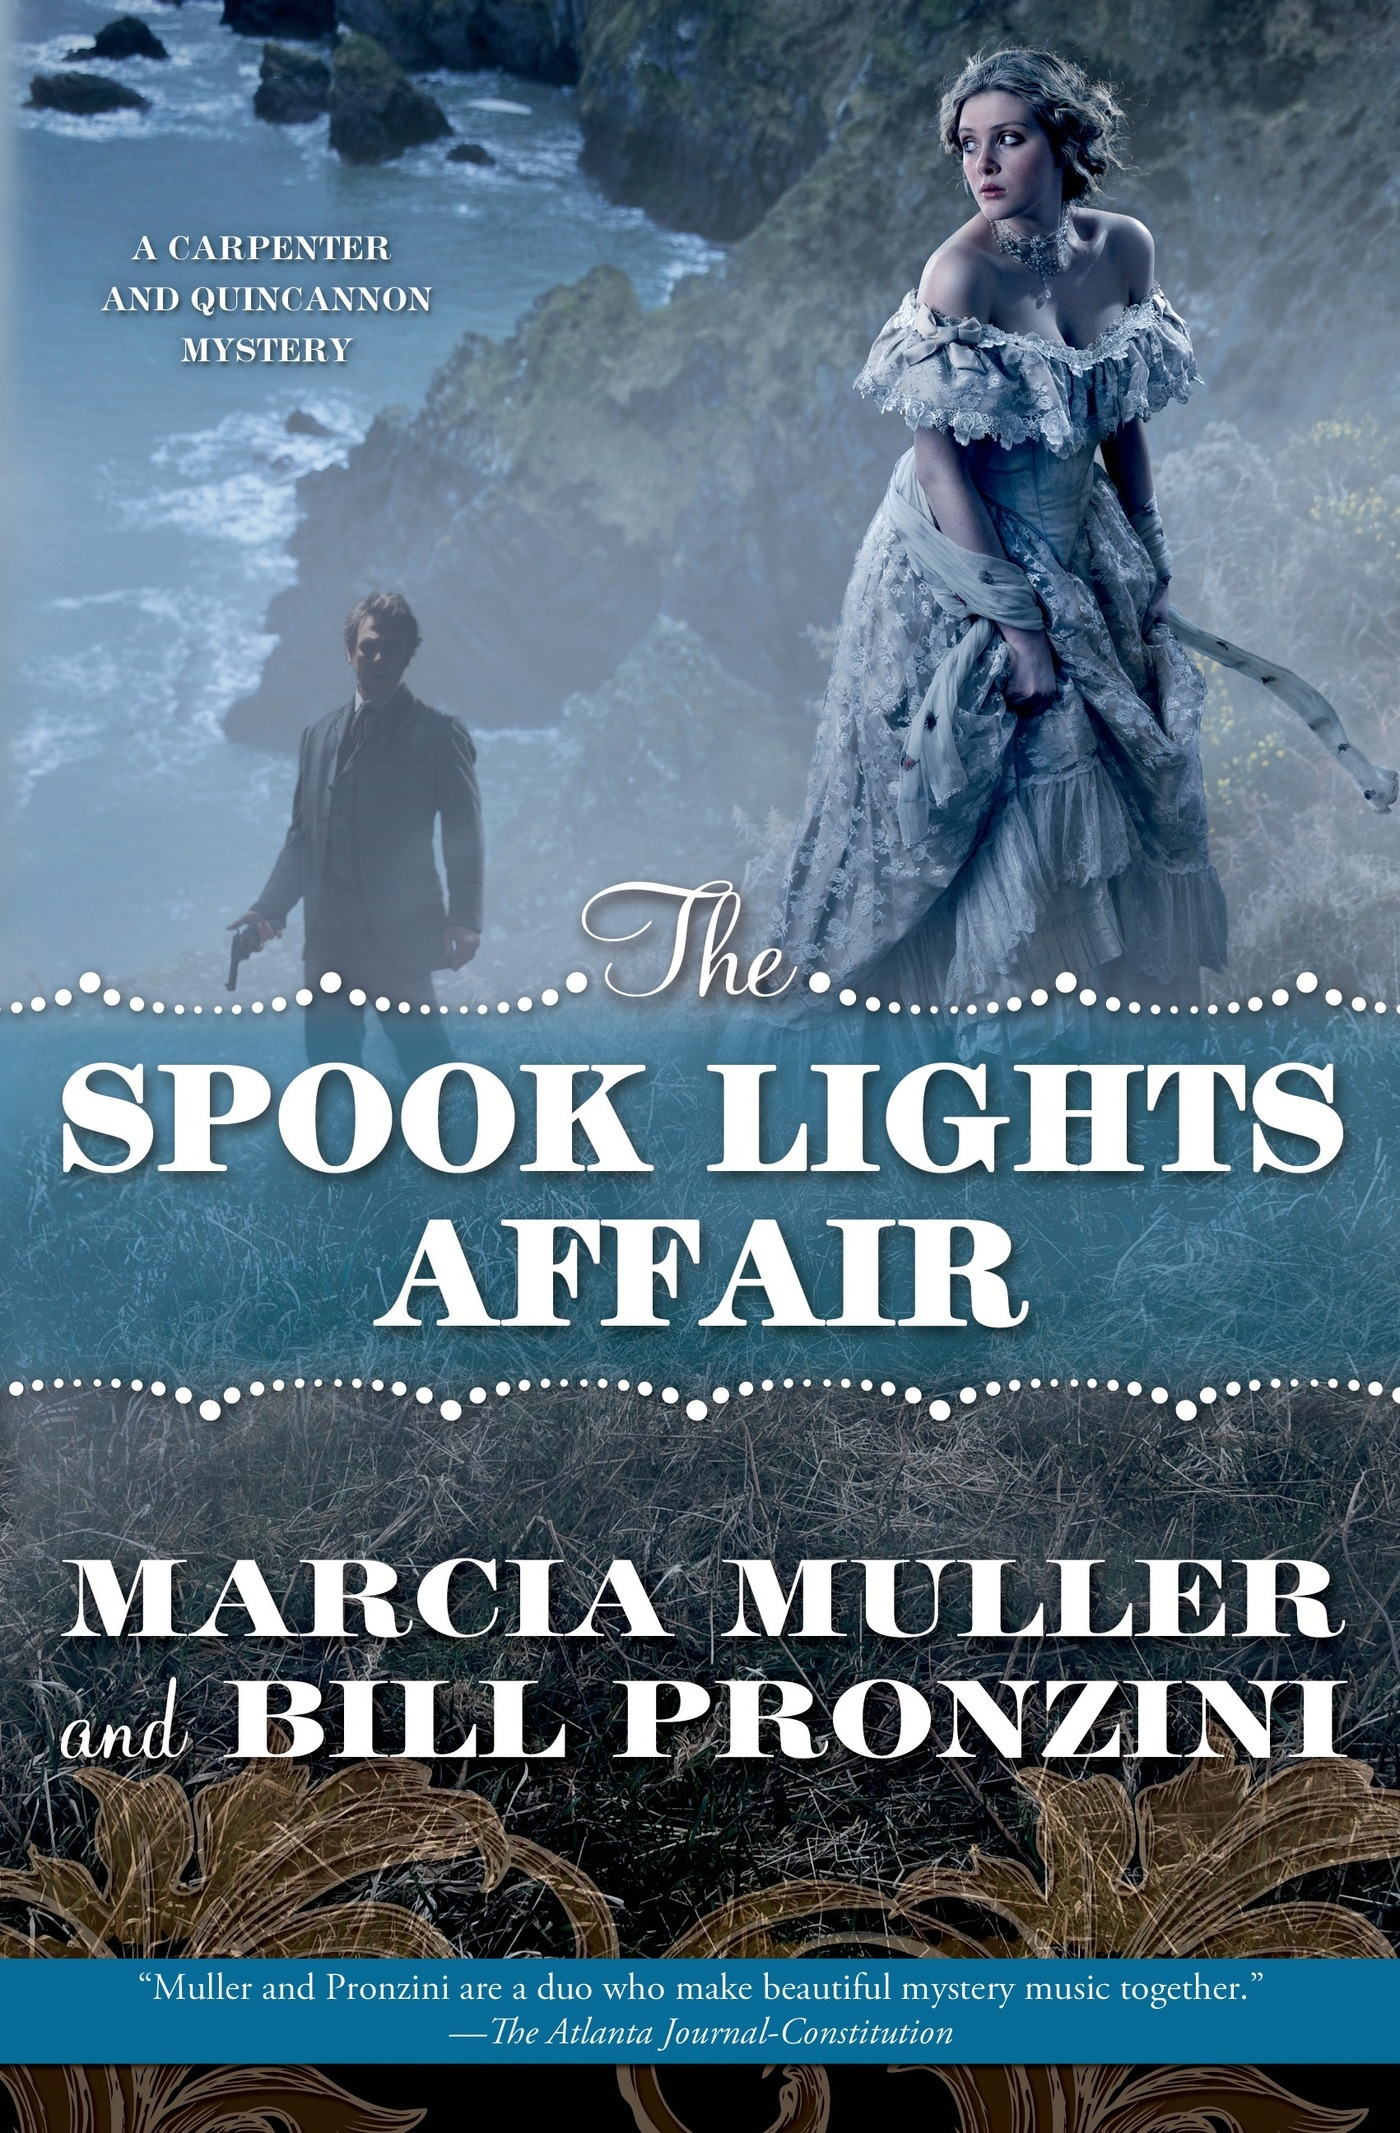 The Spook Lights Affair A Carpenter and Quincannon Mystery